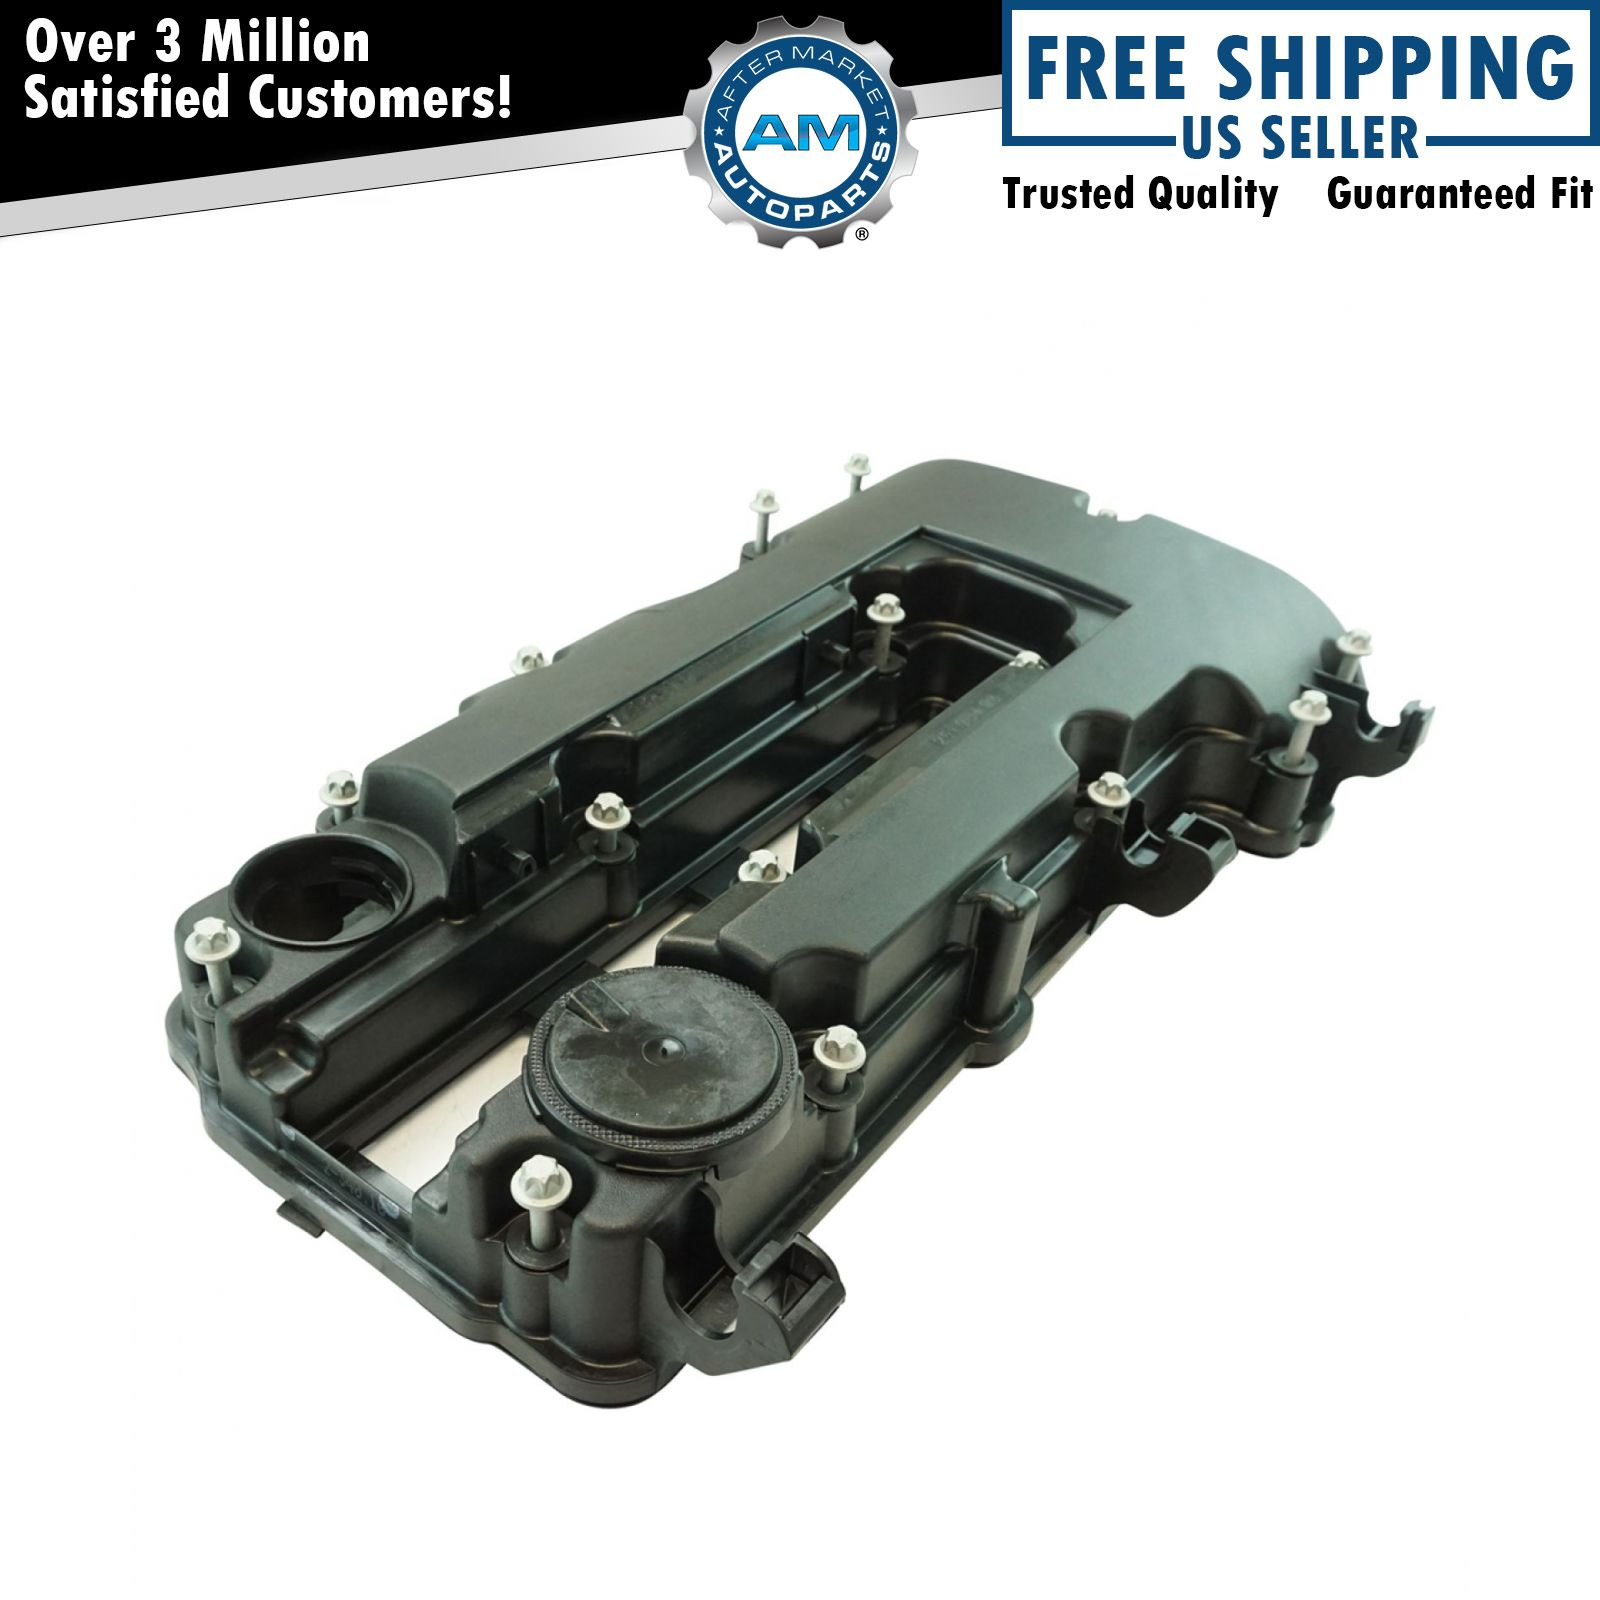 OEM Camshaft Valve Cover W/ Bolts & Seal For Chevy Cruze